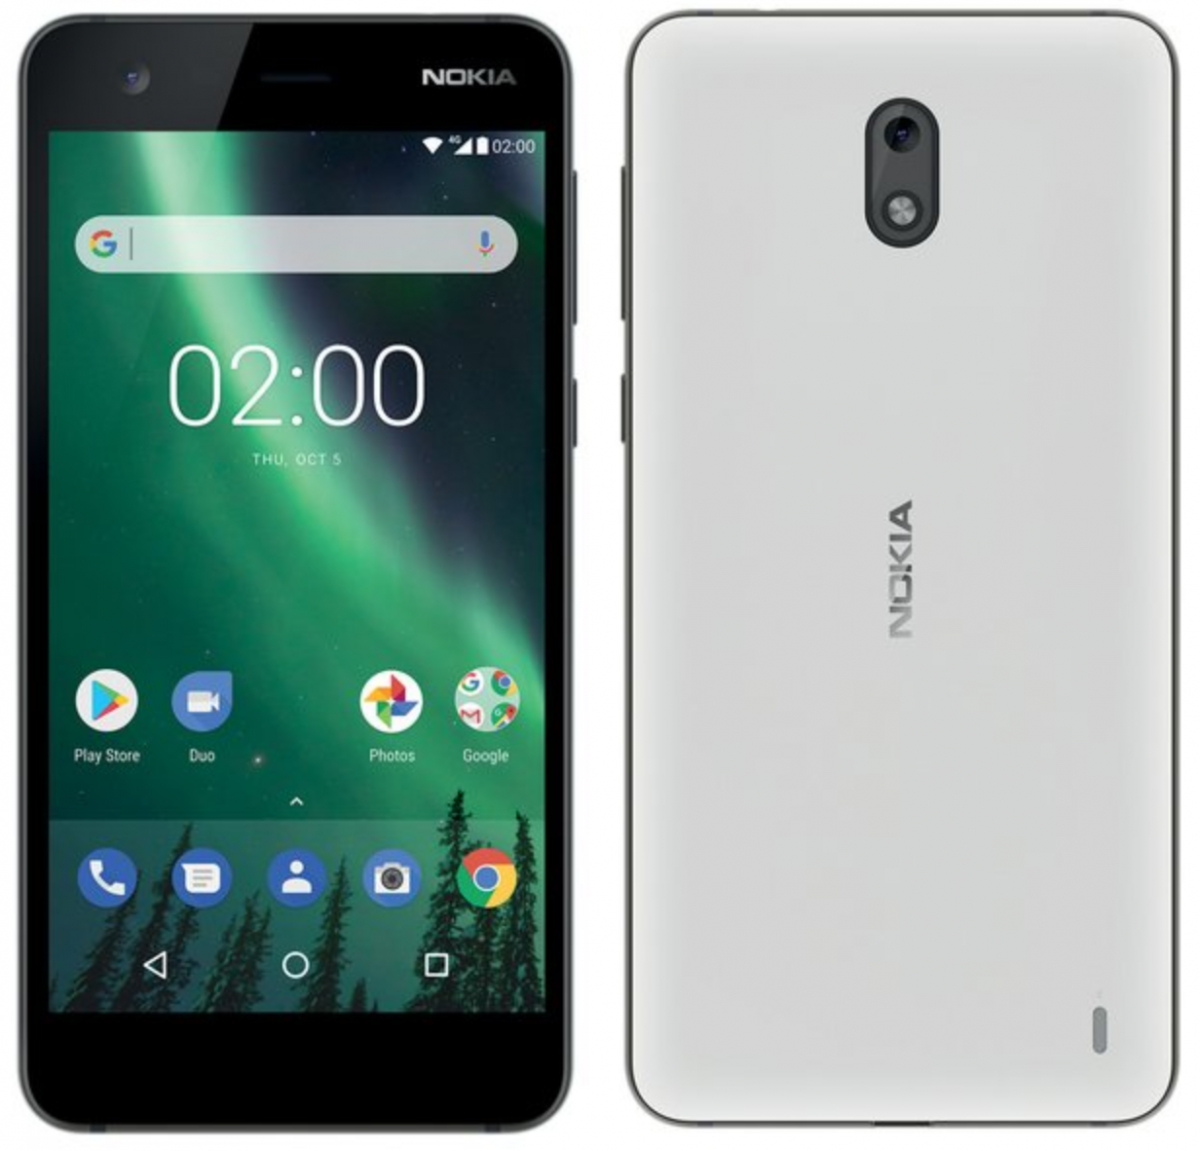 How to sign an application for Nokia smartphones